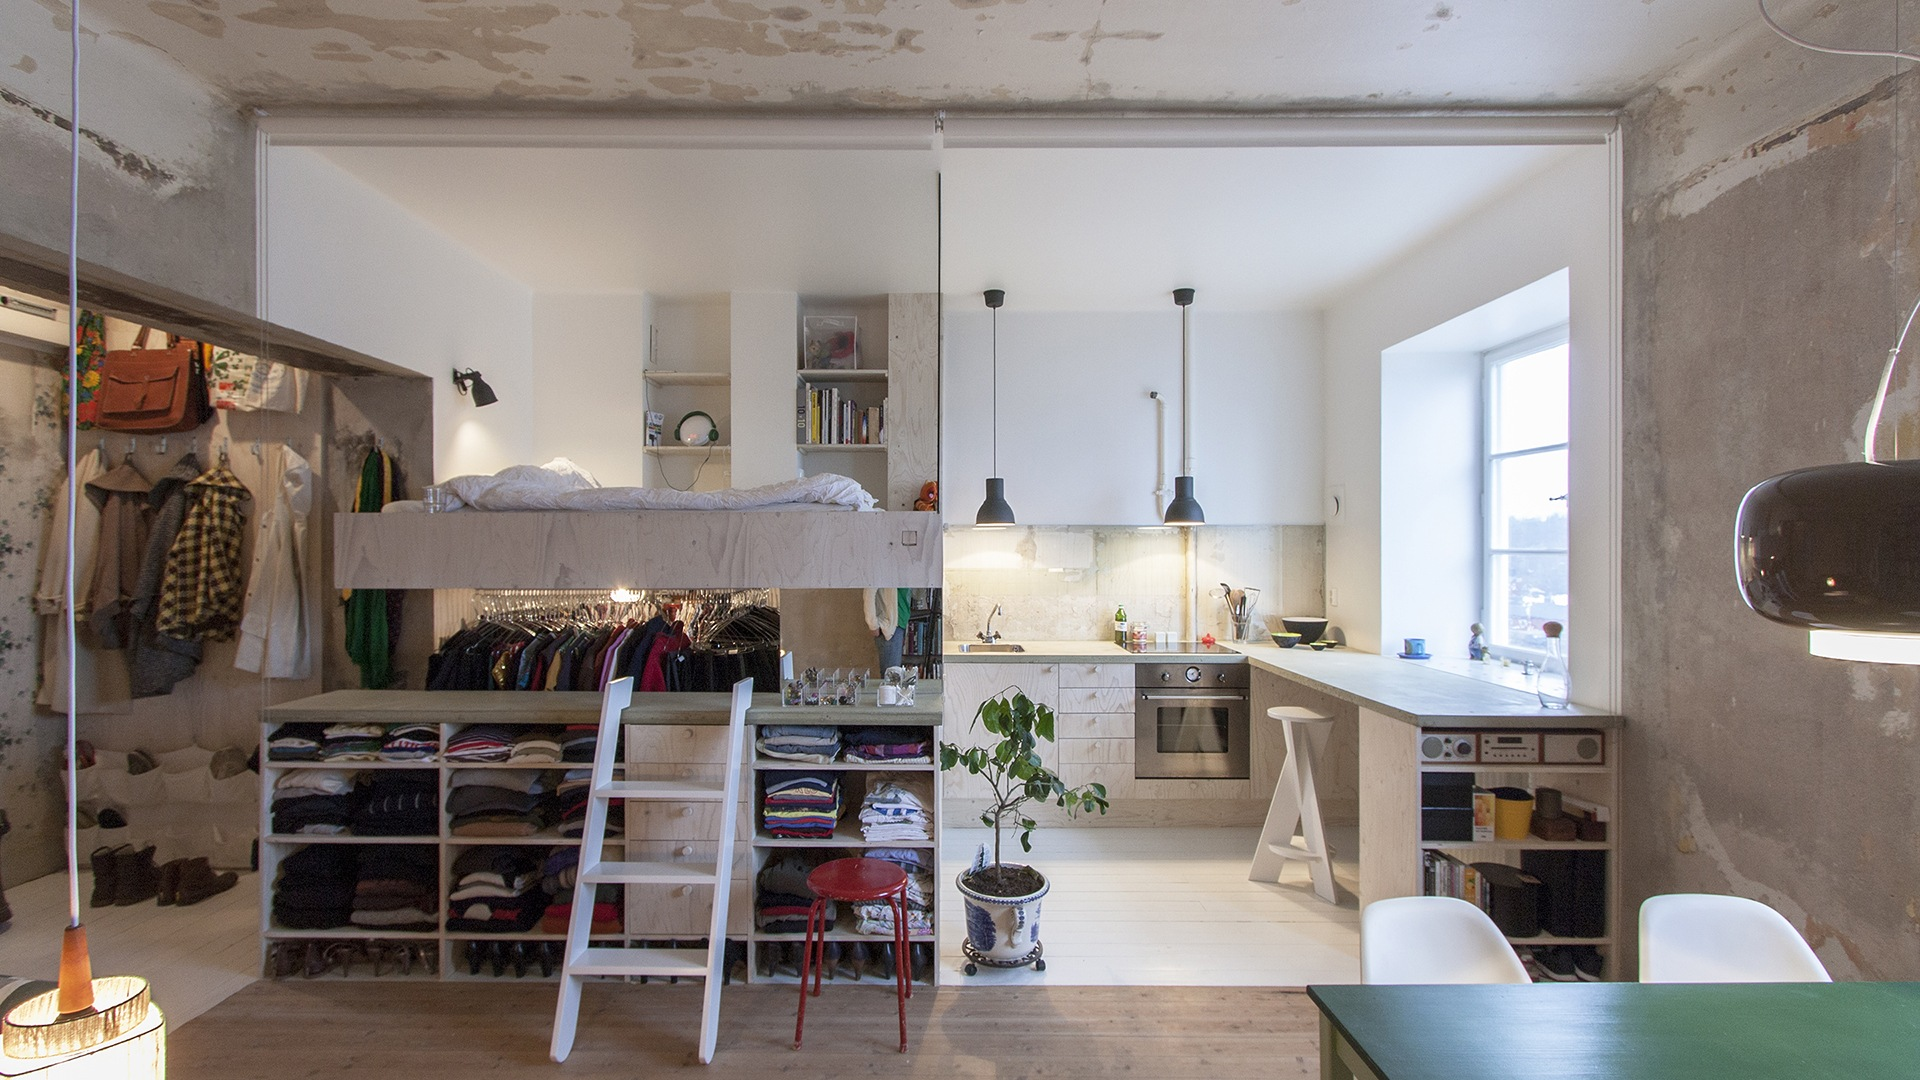 Before-and-after pics: See a storage room transform into a studio apartment